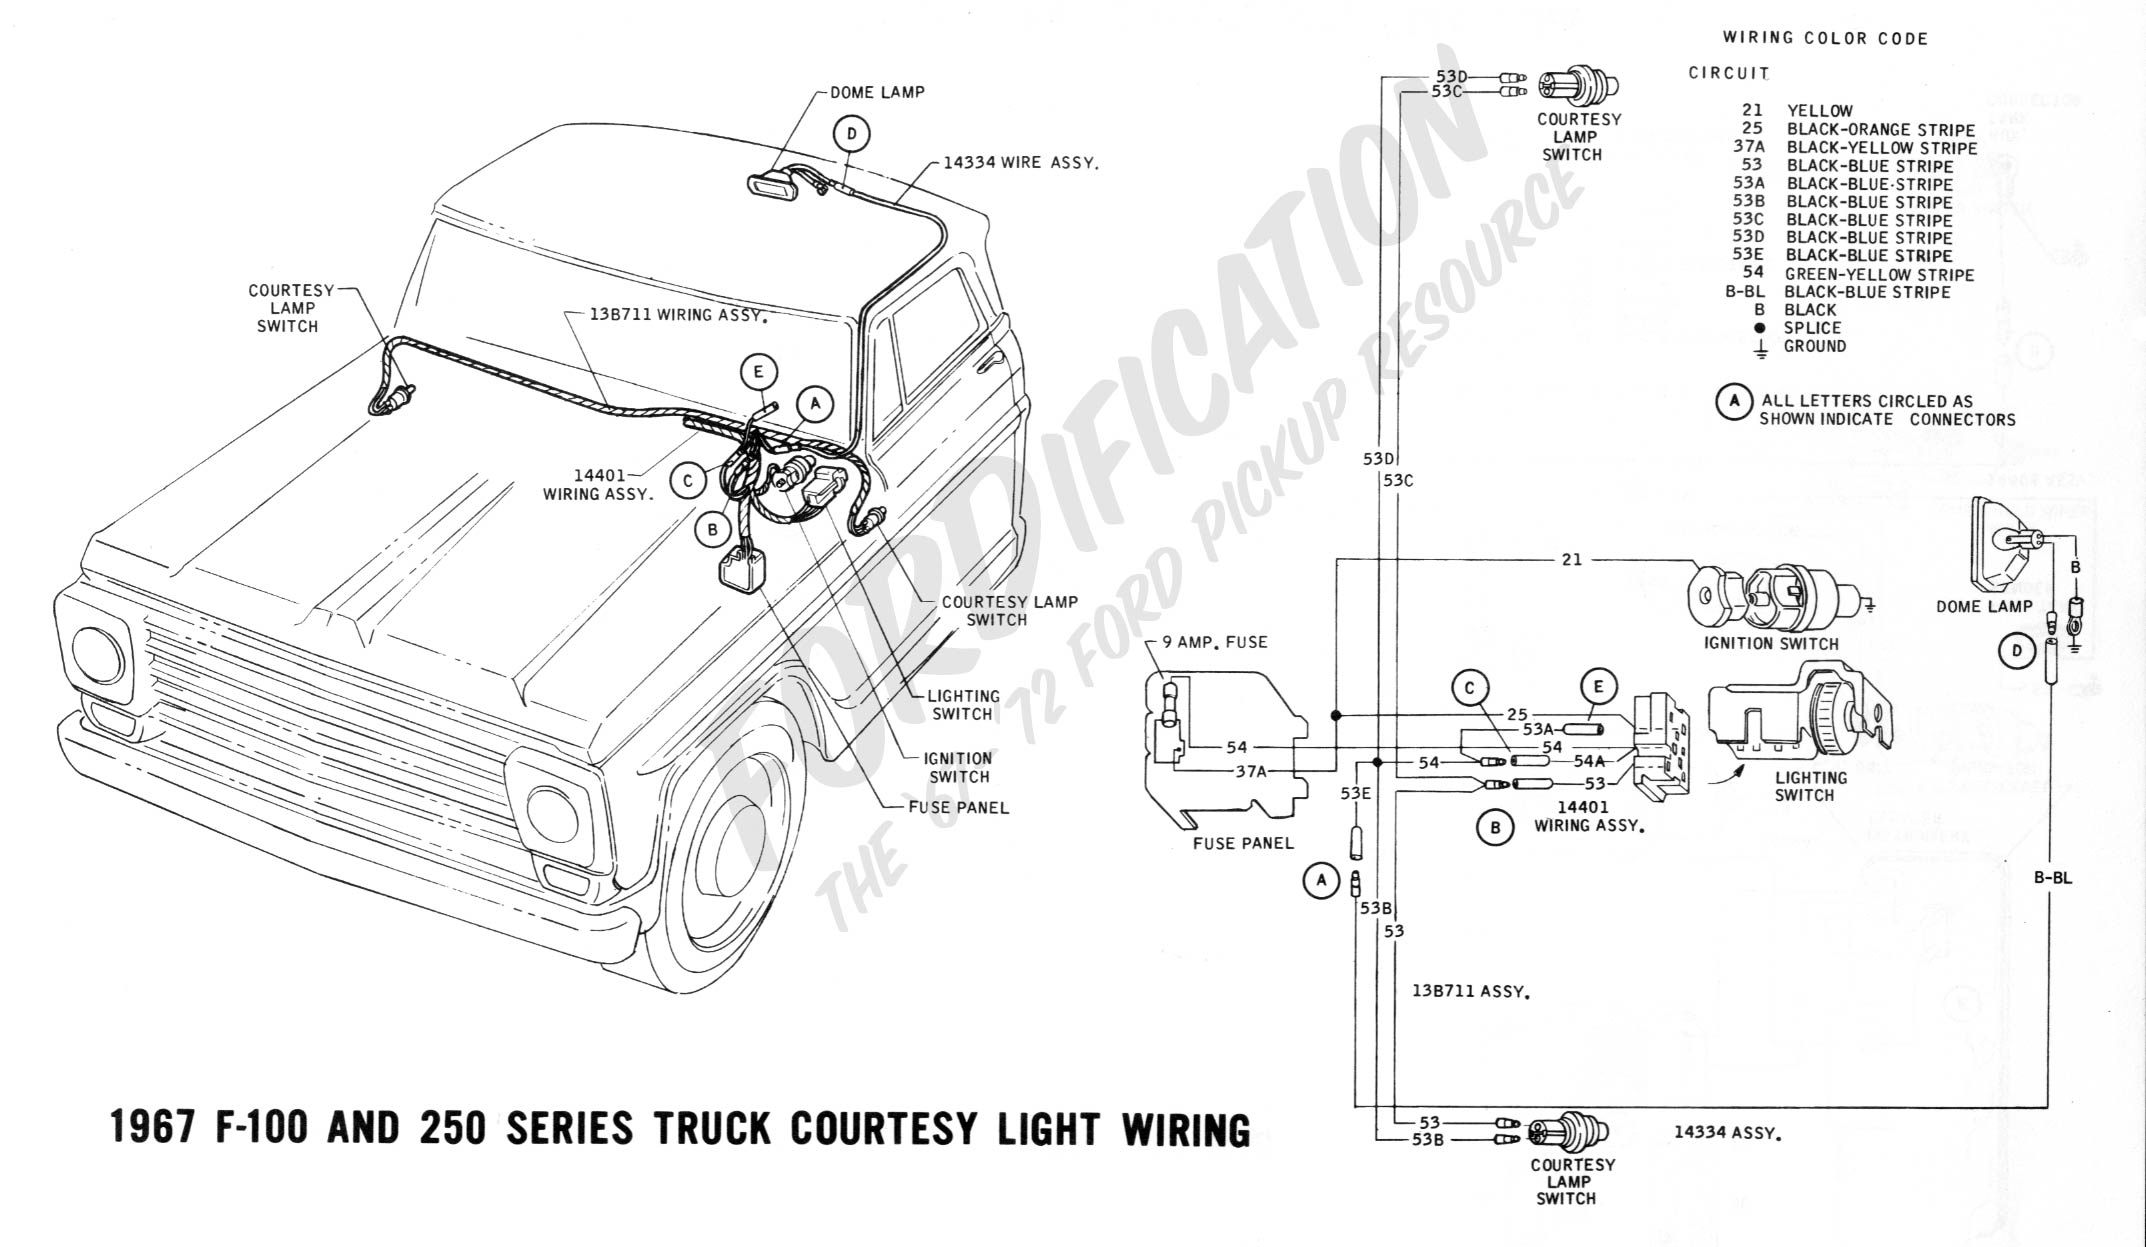 wiring 1967courtesylight ford truck technical drawings and schematics section h wiring Ford F-250 Wiring Diagram at mifinder.co